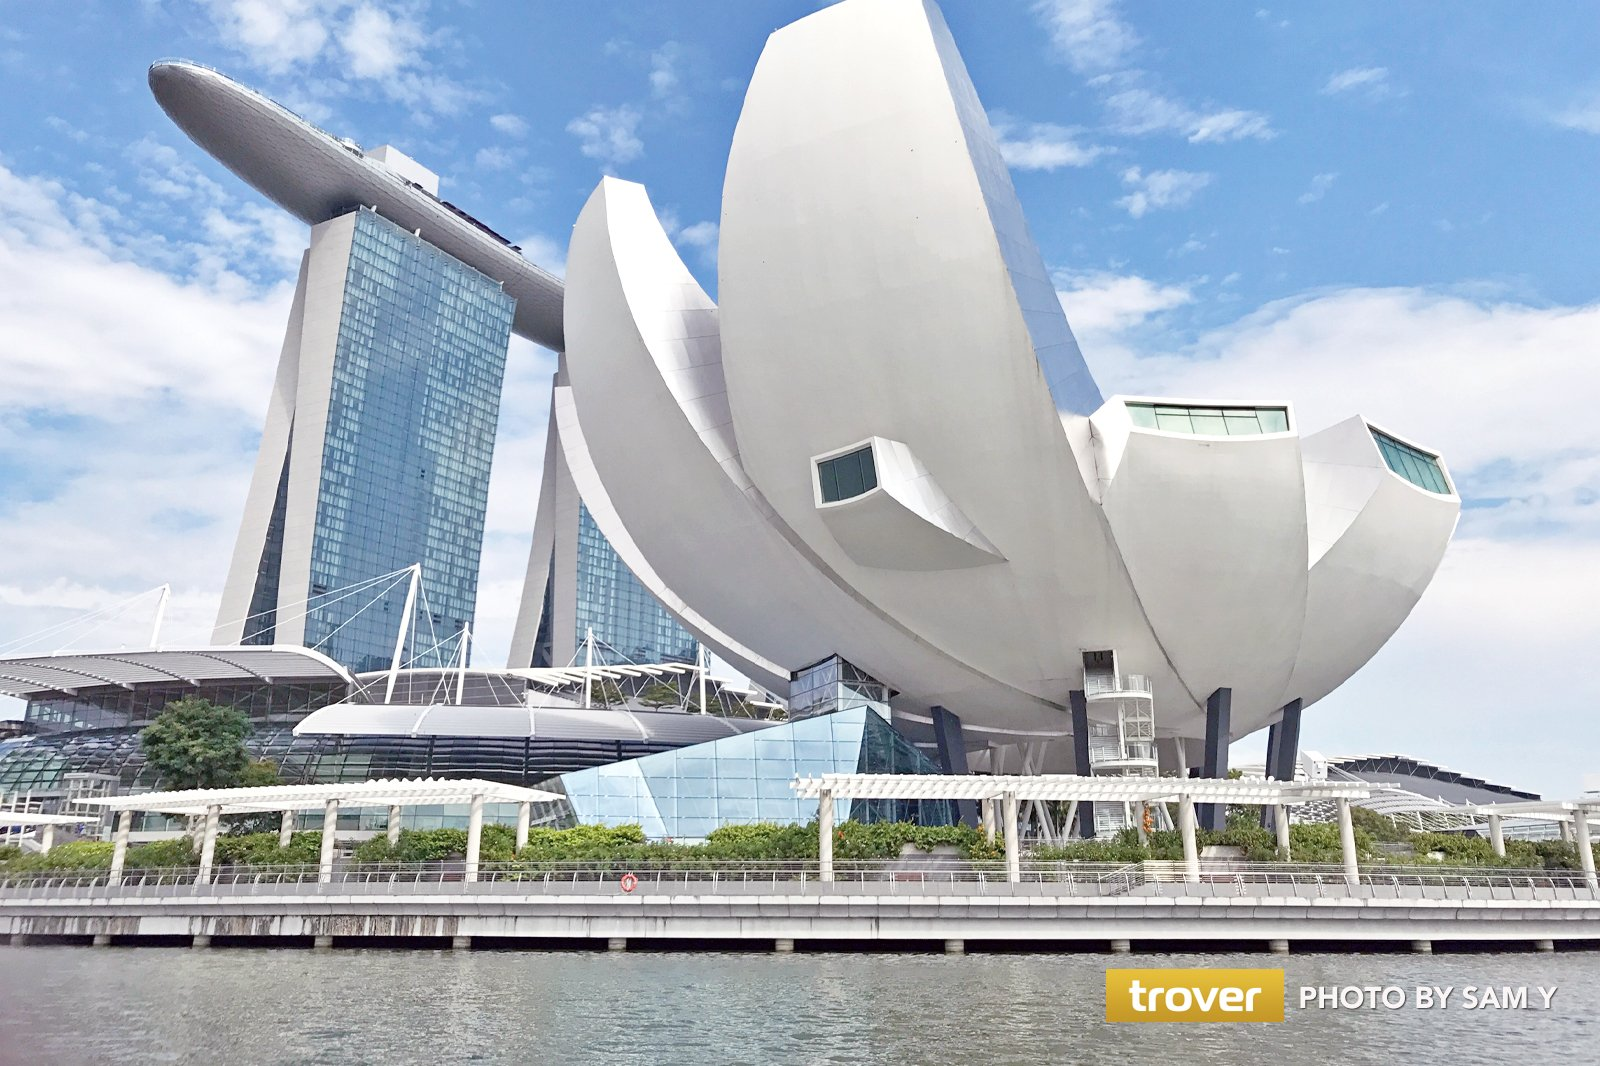 16 Best Things to Do in Marina Bay - What is Marina Bay Most Famous For?